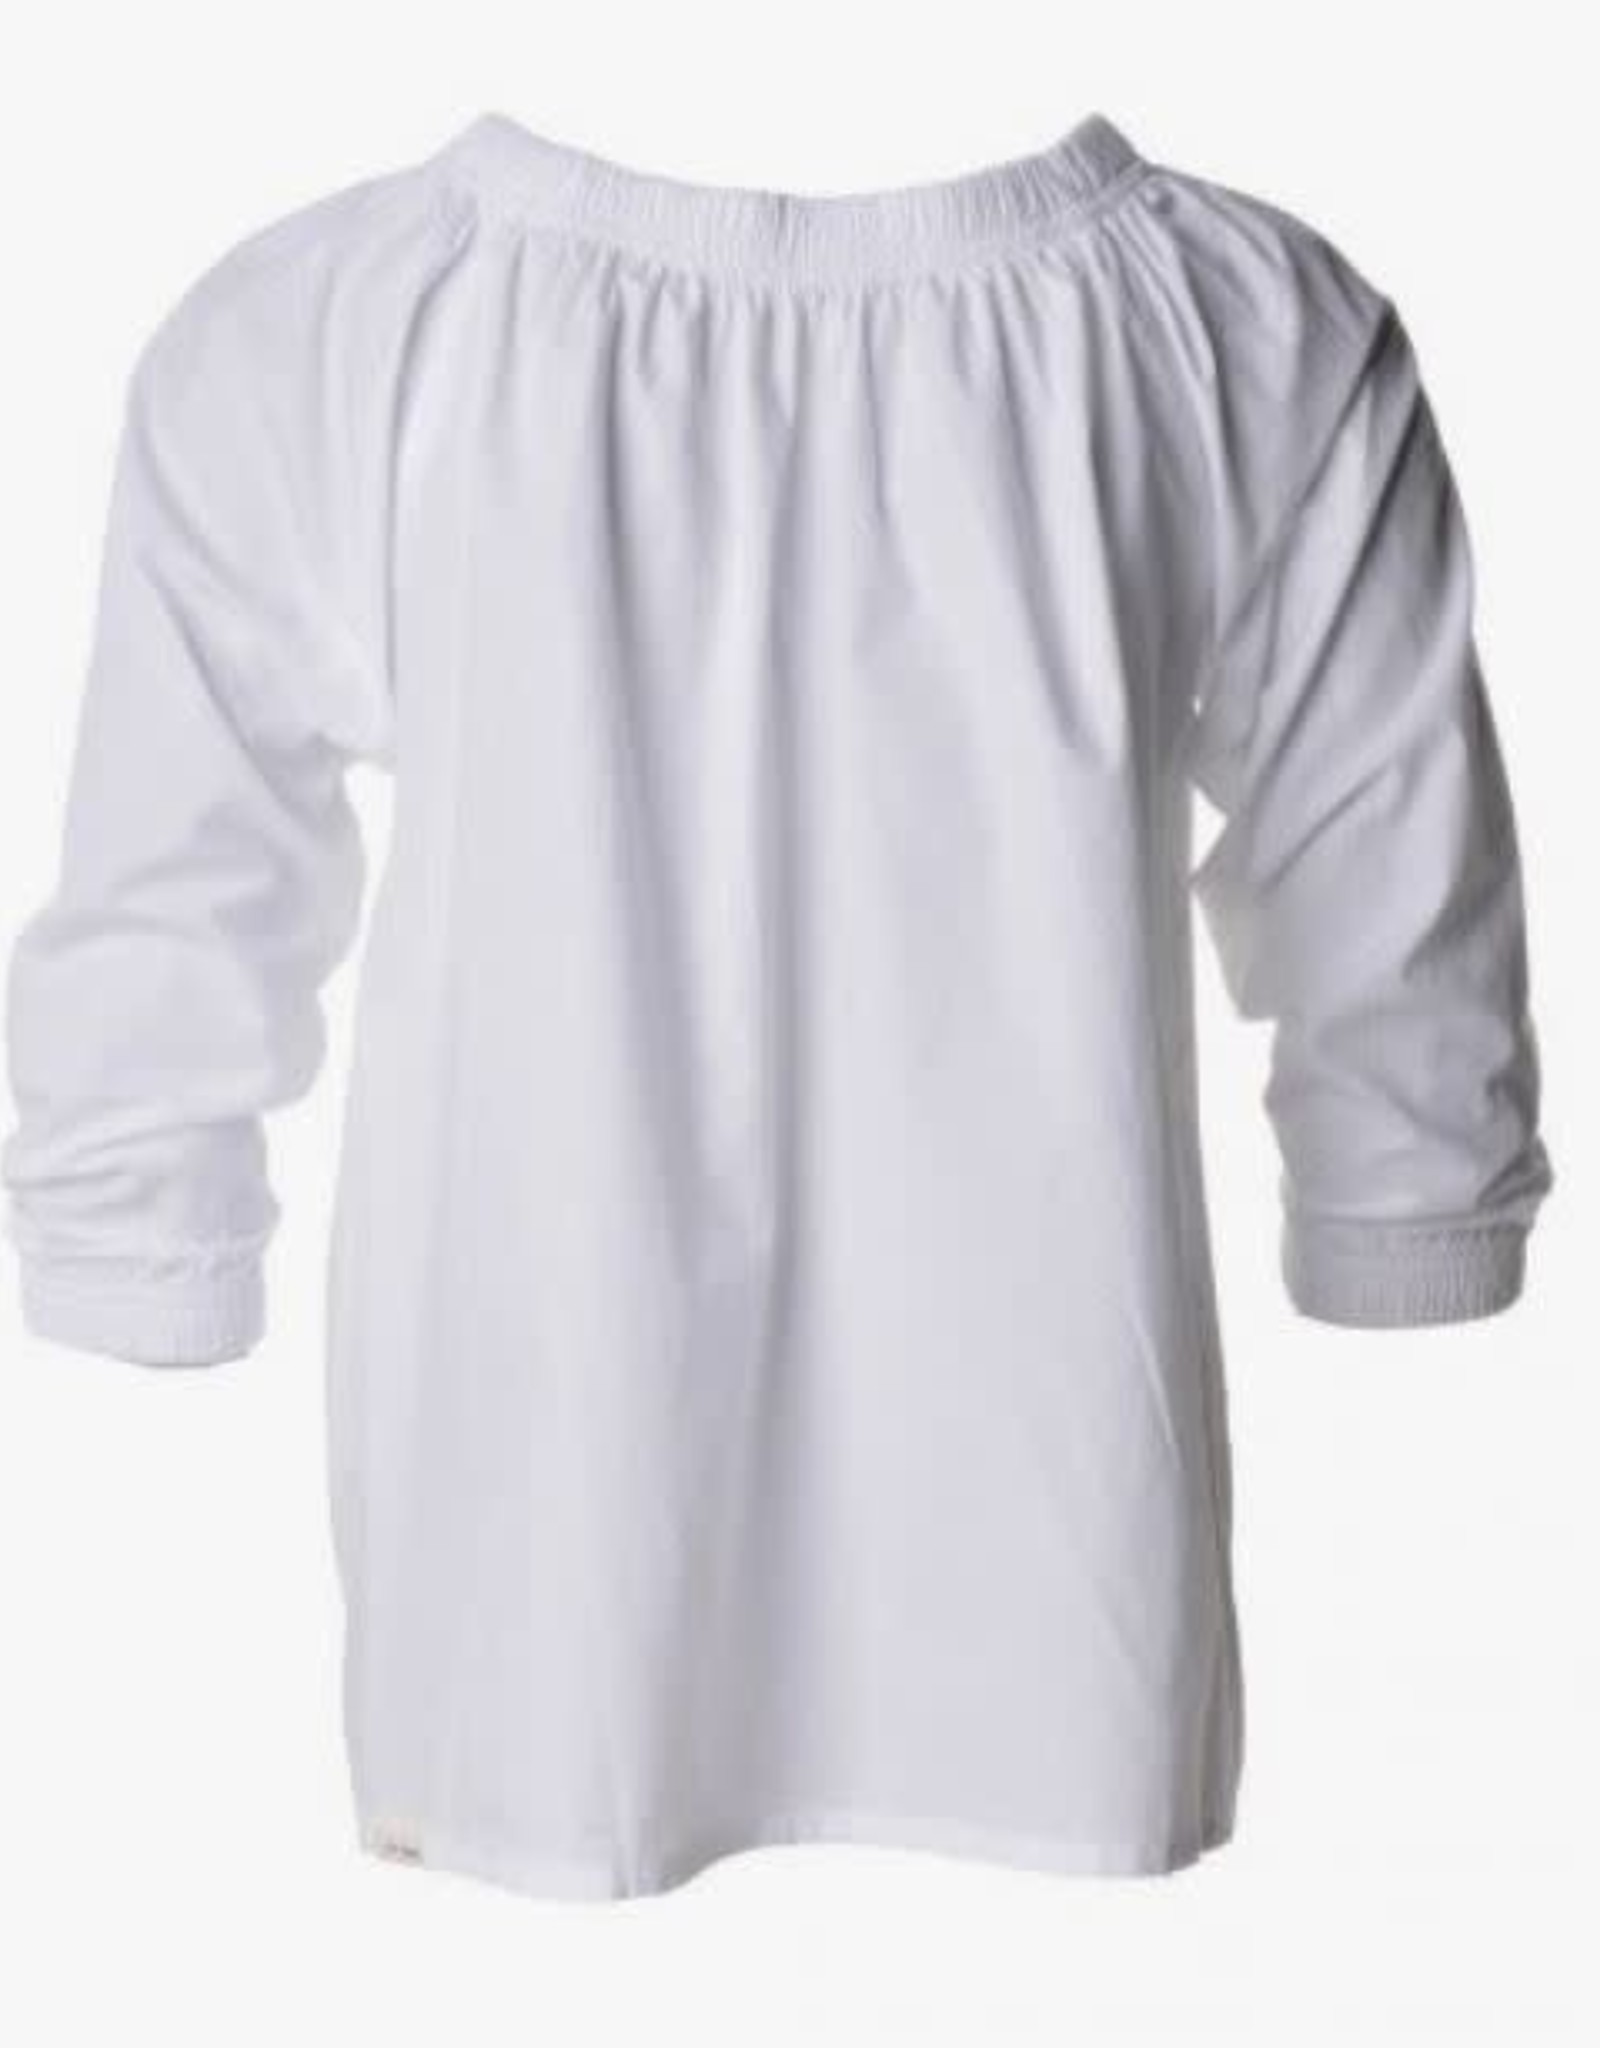 Penn & Ink N.Y. Blouse Off Shoulder White mt 16